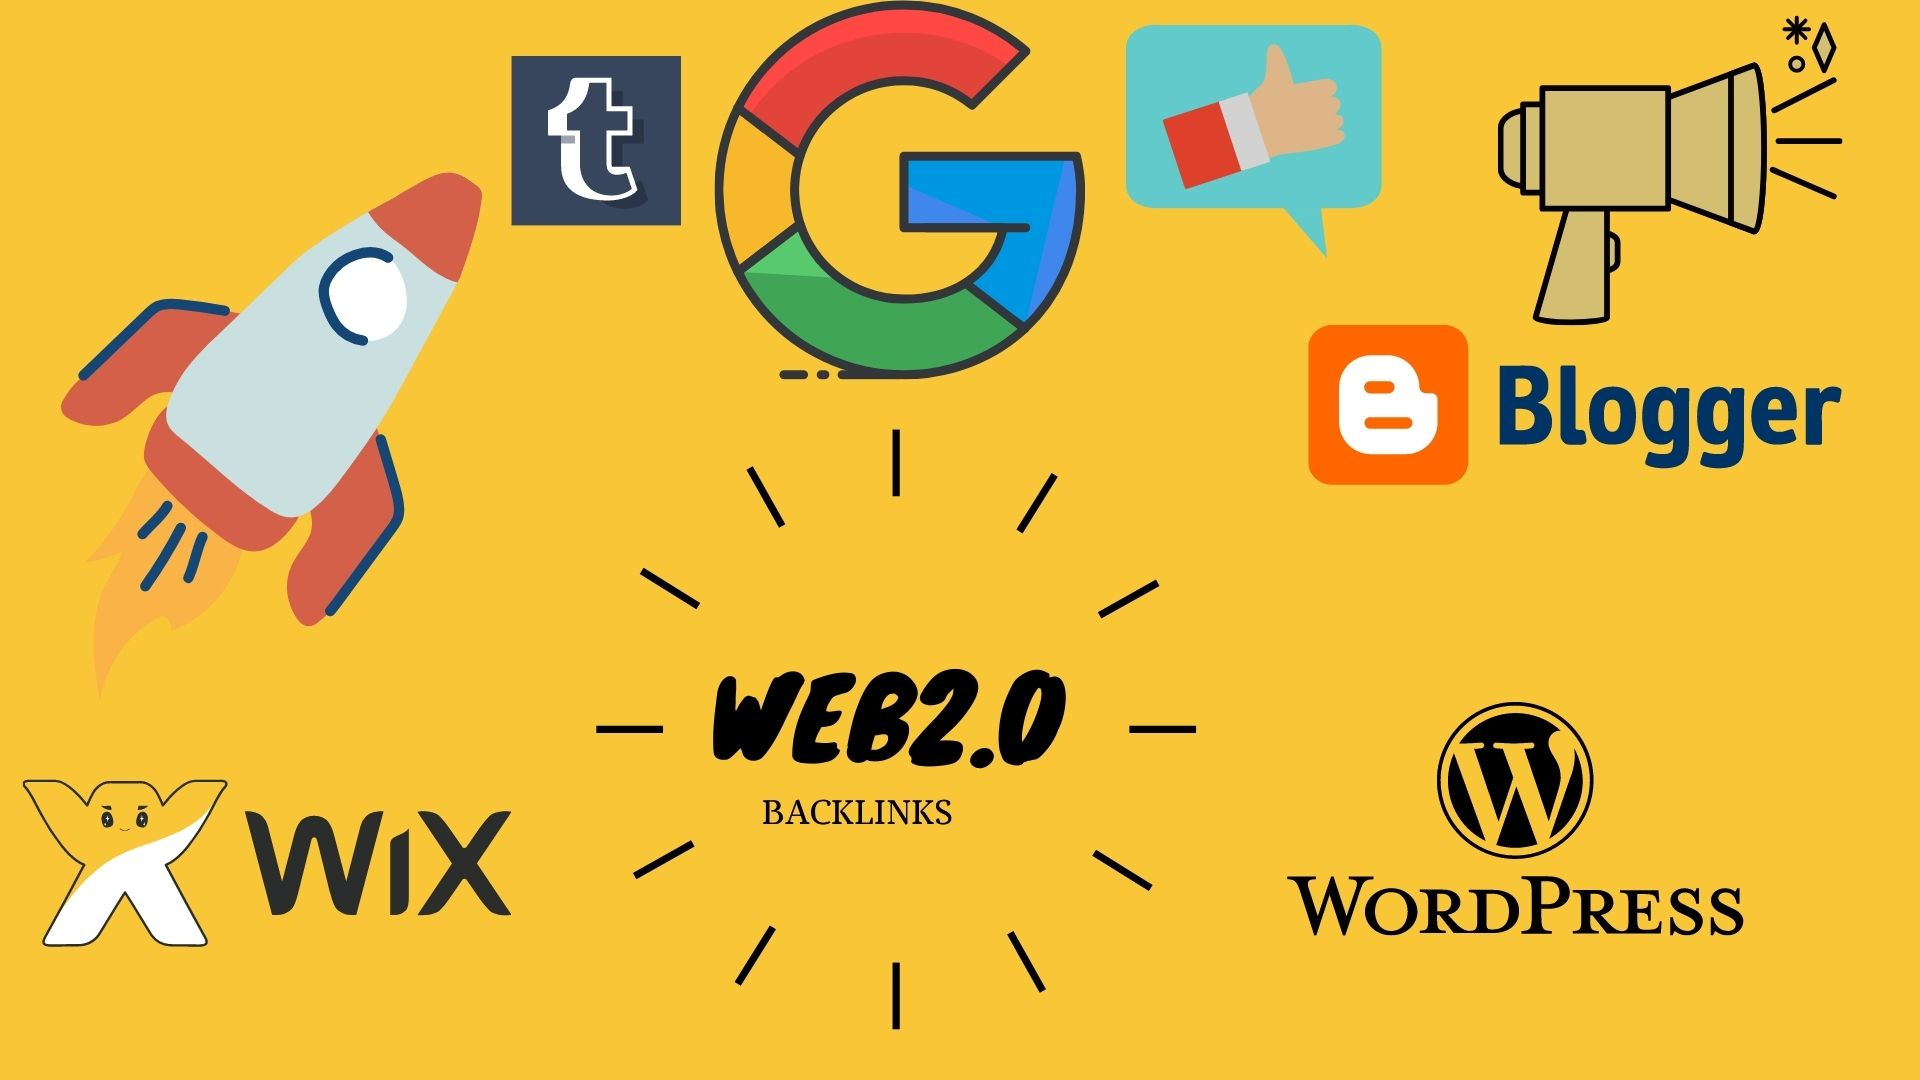 I will build 50 high-quality Web 2 0 Blog backlinks manually and write 5 spun articles for you